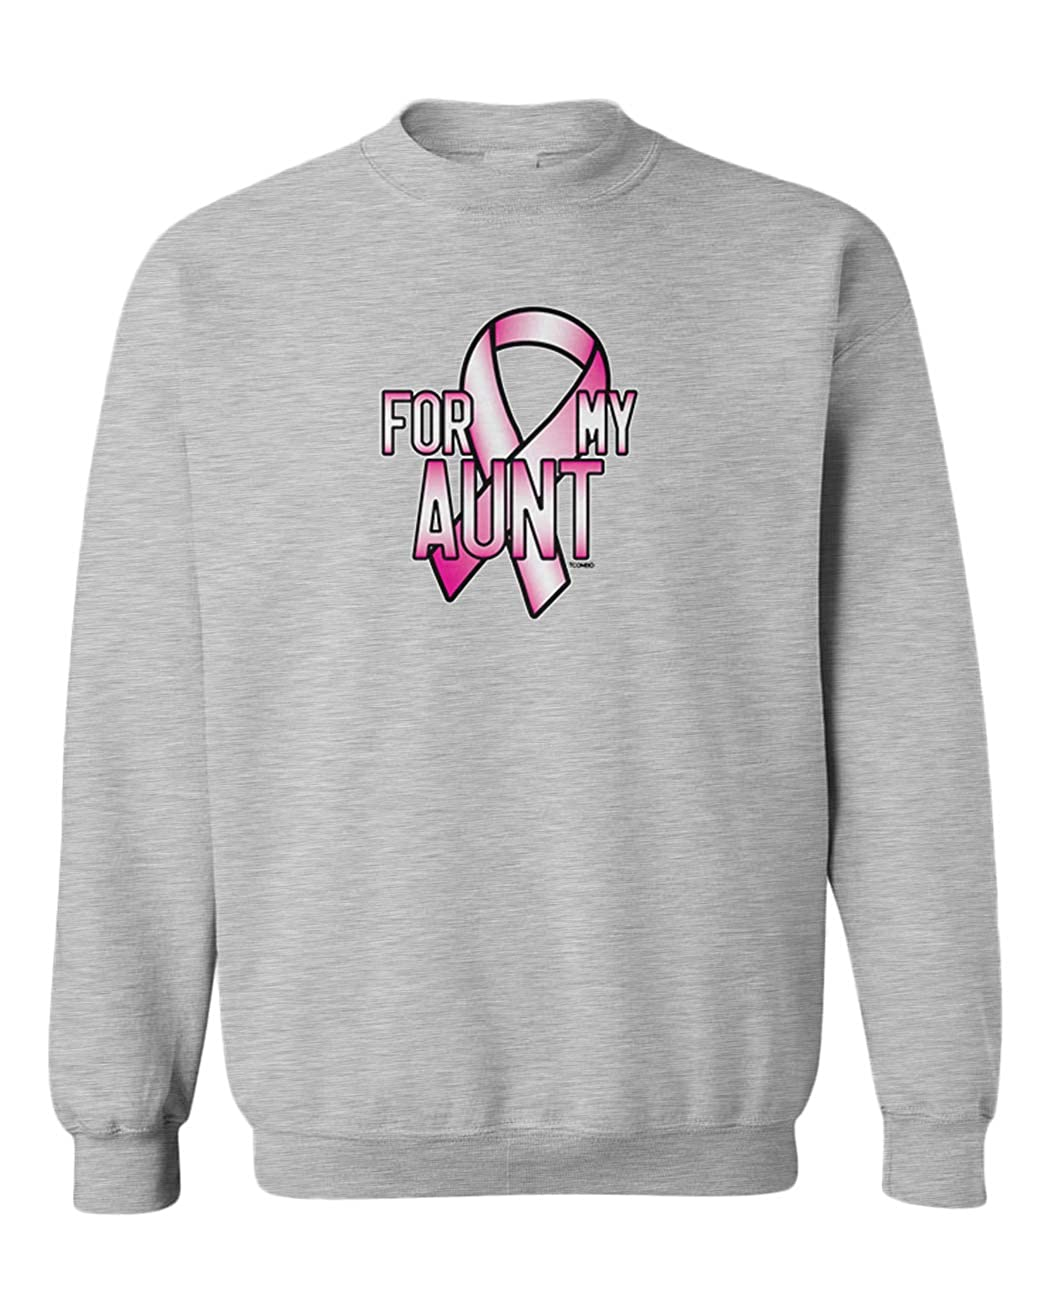 Breast Cancer Ribbon Youth Fleece Crewneck Sweater Tcombo for My Aunt